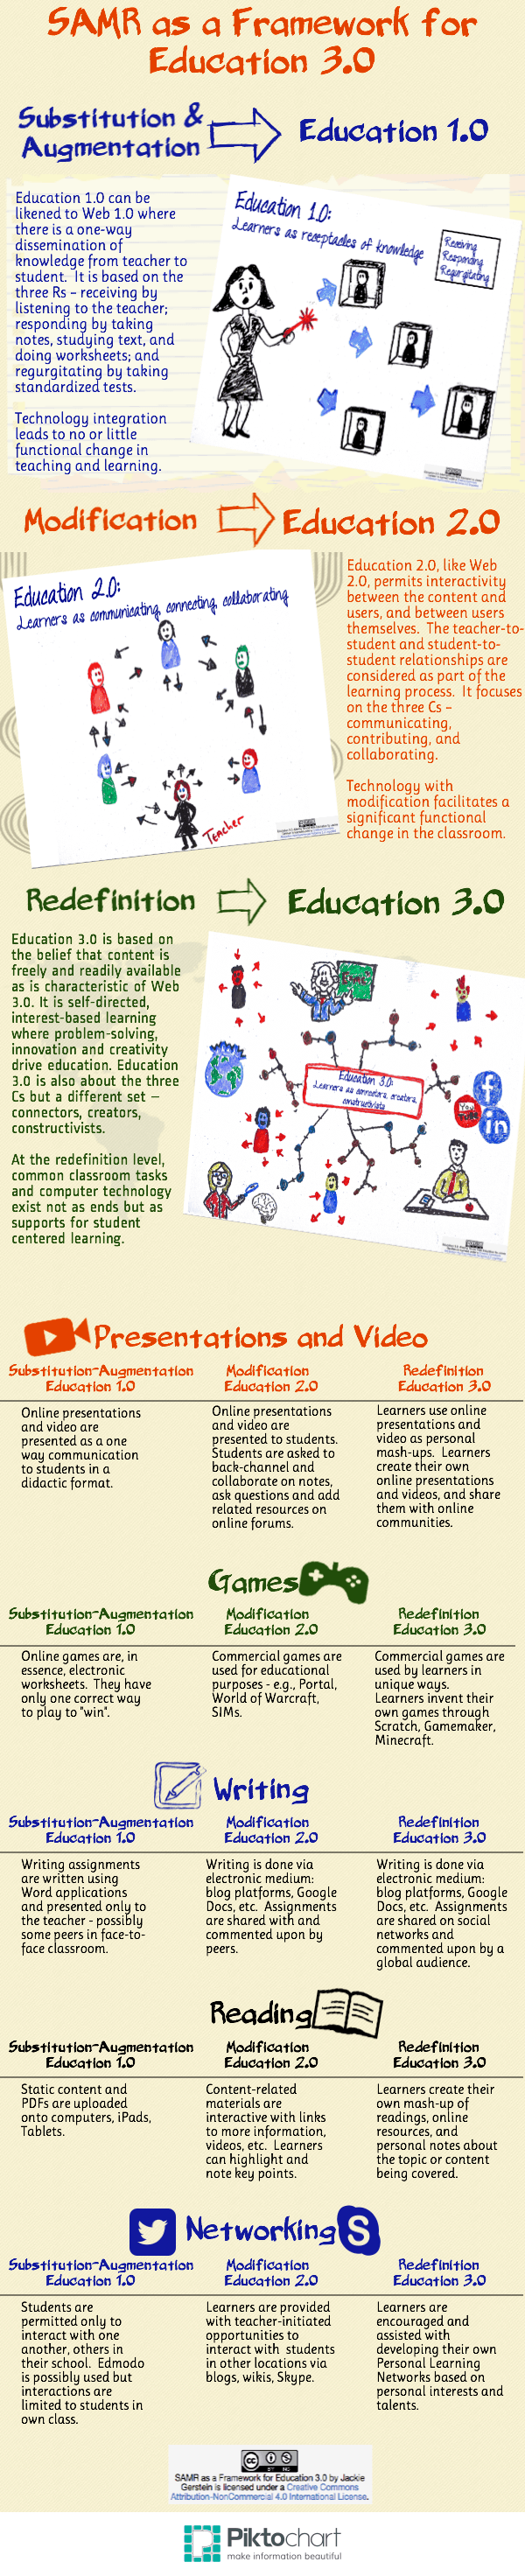 A-Framework-for-Moving-Towards-Education-3.0-Infographic